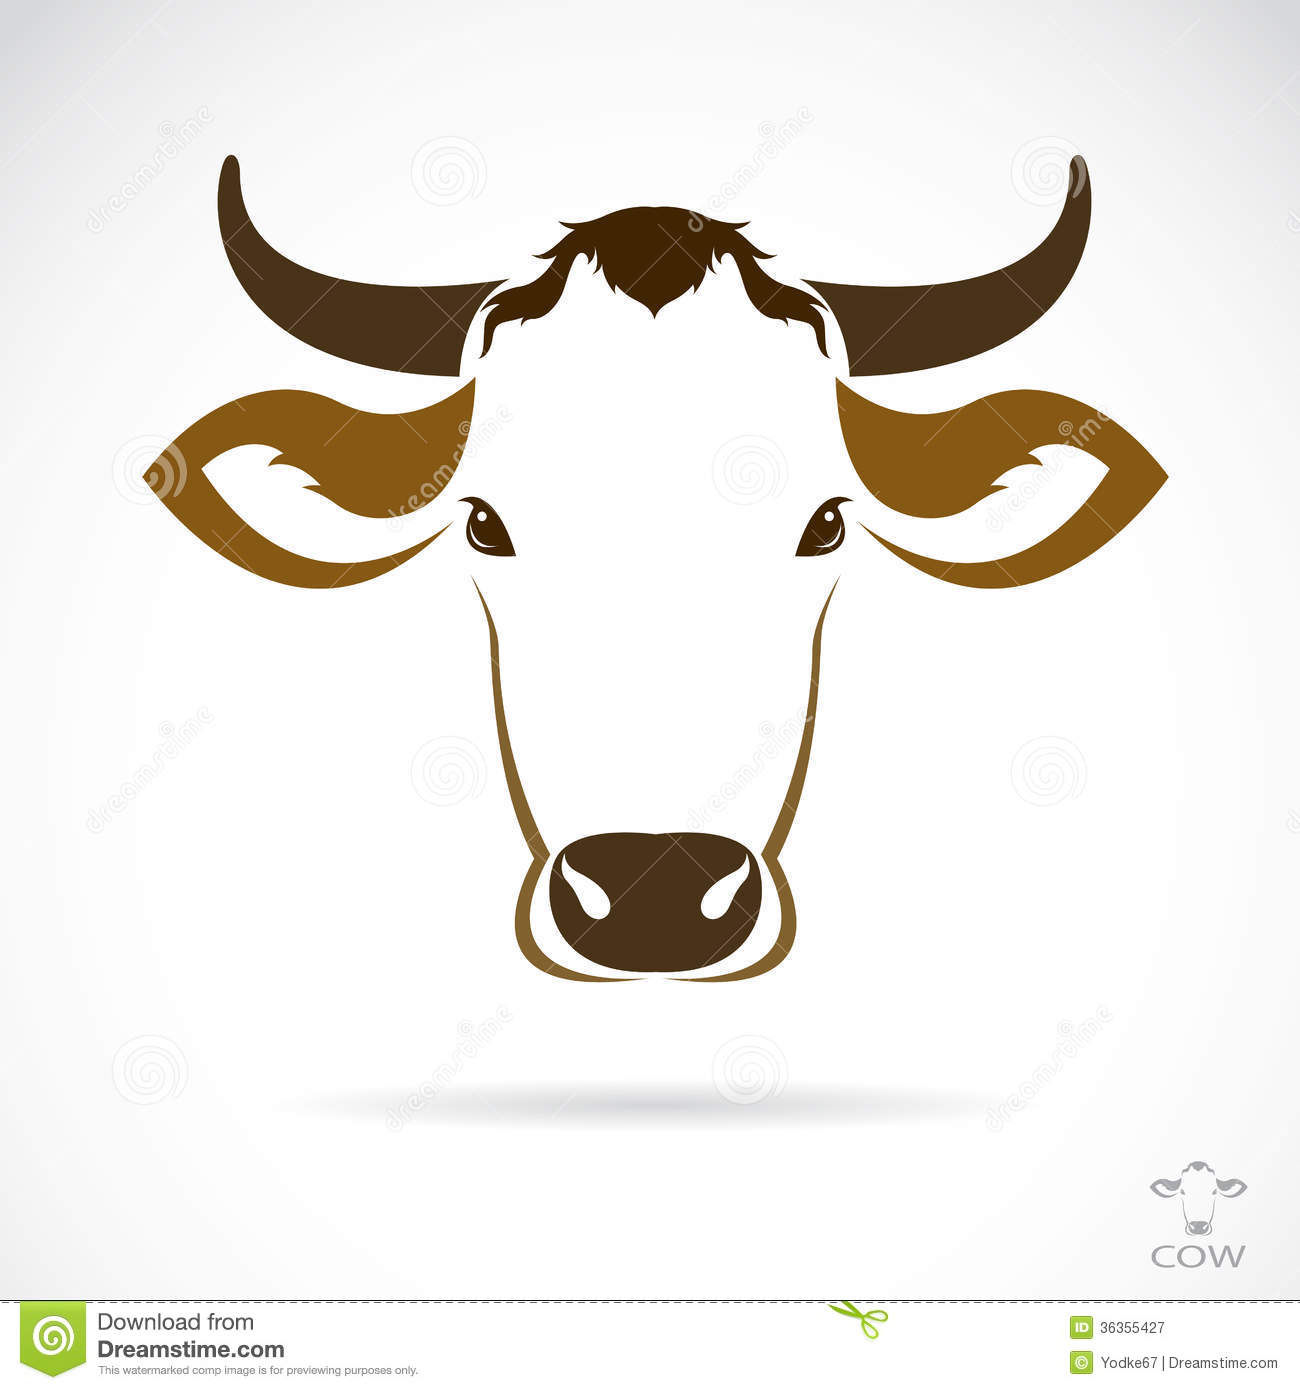 cabeza de vaca Álvar núñez cabeza de vaca arrived in the new world in 1527 intending to conquer the florida peninsula and whatever might lie inland of the gulf of mexico.